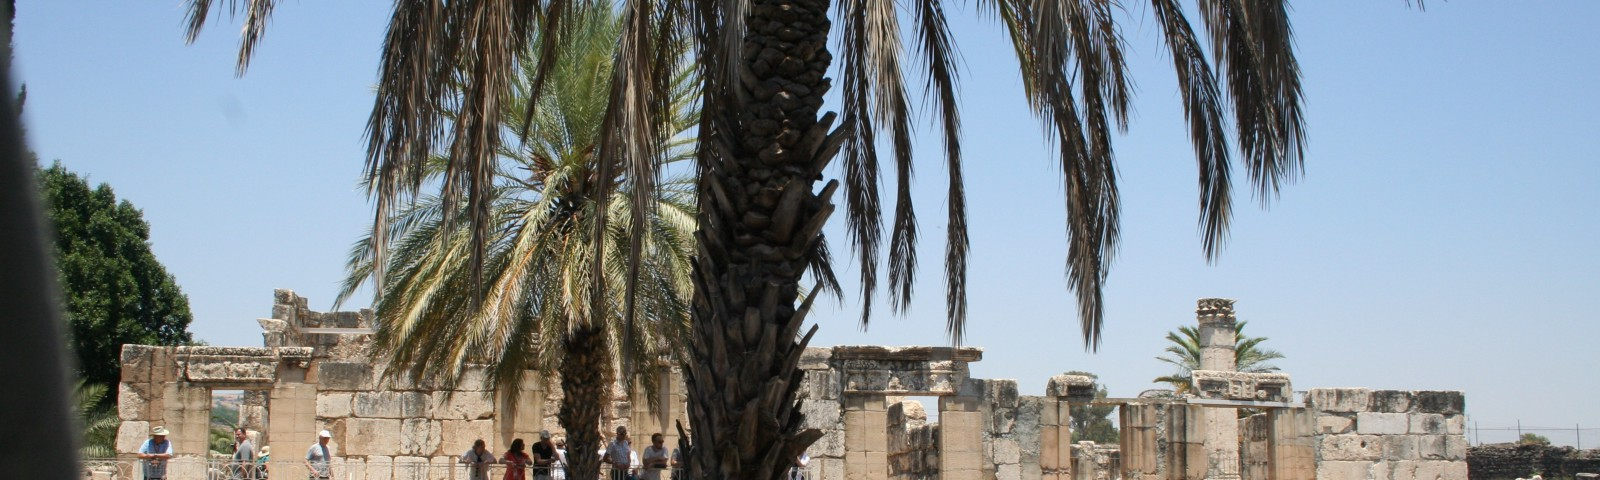 Ruins of a synagogue in Capernaum behind a palm tree